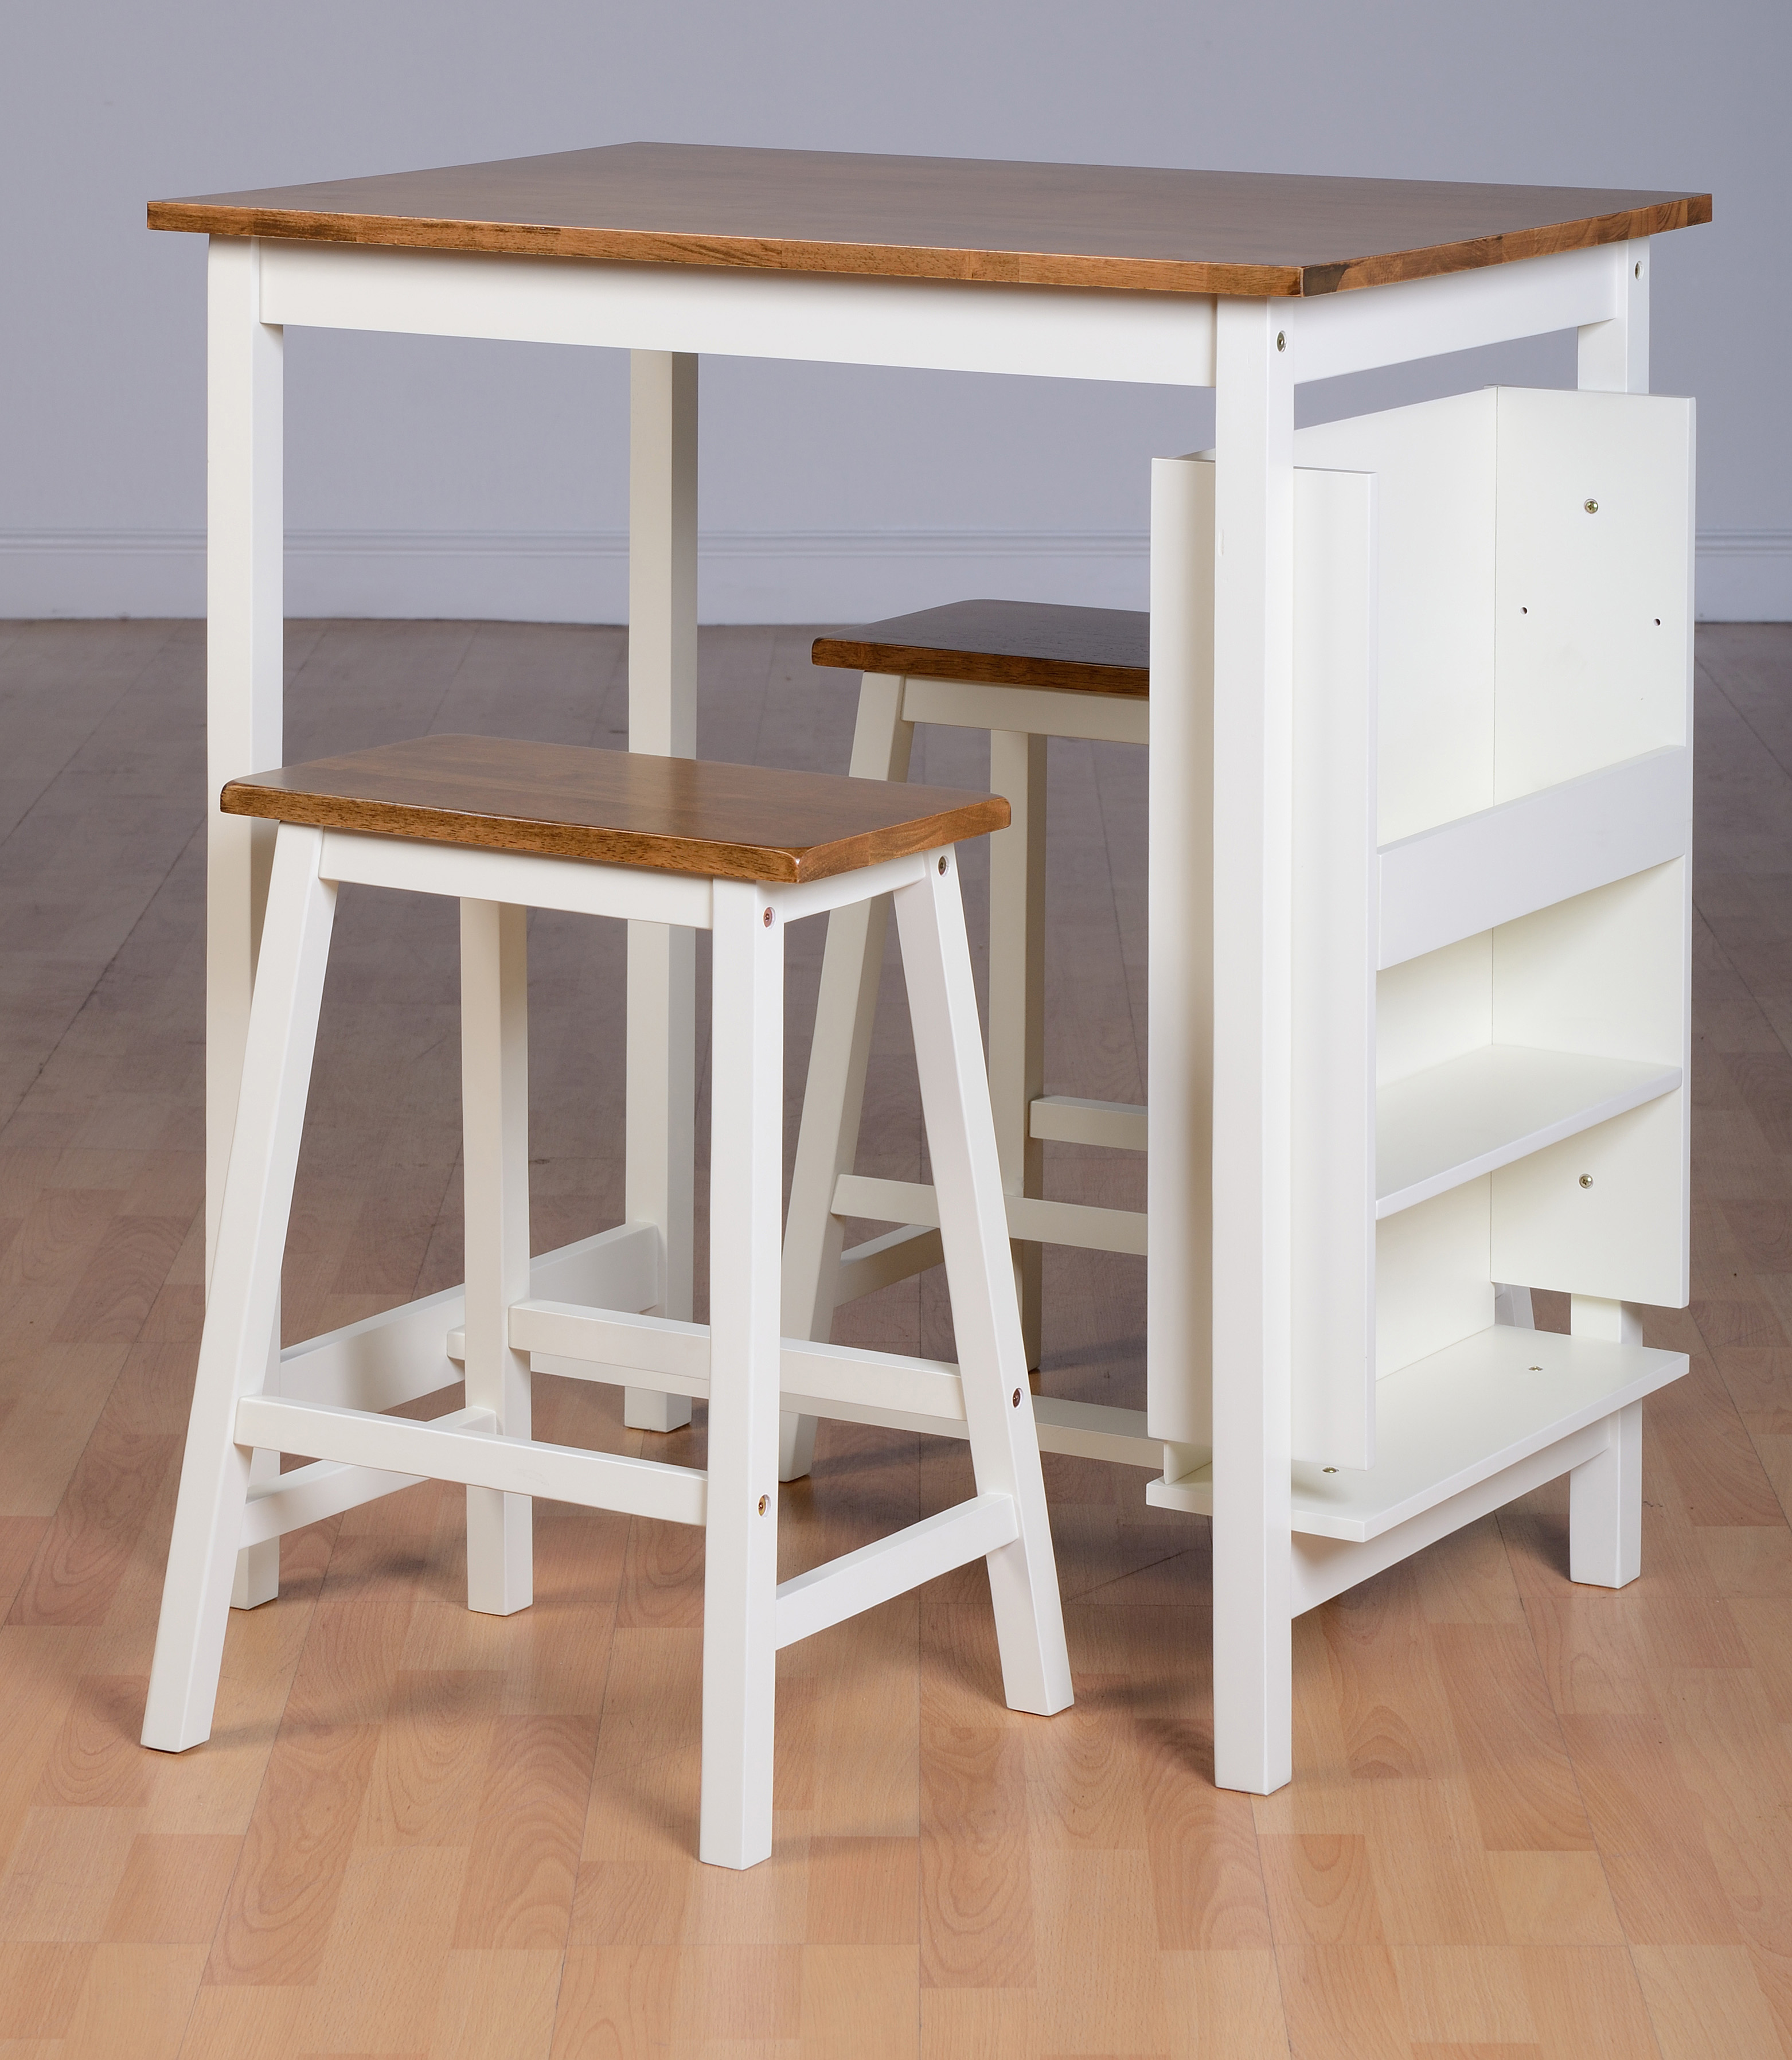 bar table chairs pedicure package deals breakfast and chair set dining 2 stools